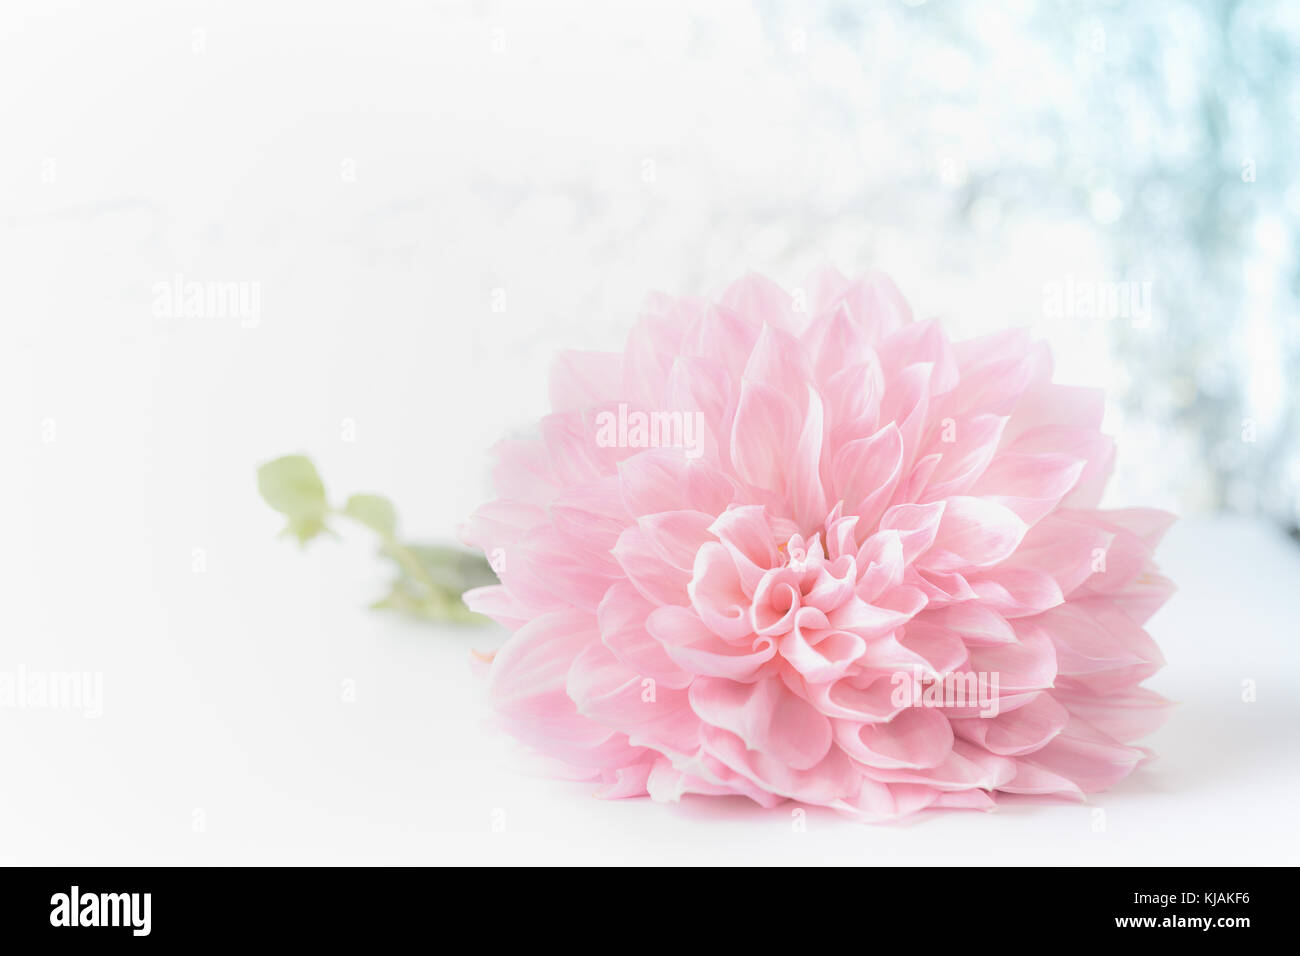 Big beautiful pink pale flower on bokeh background front view stock big beautiful pink pale flower on bokeh background front view creative floral greeting card for mothers day wedding happy event or birthday izmirmasajfo